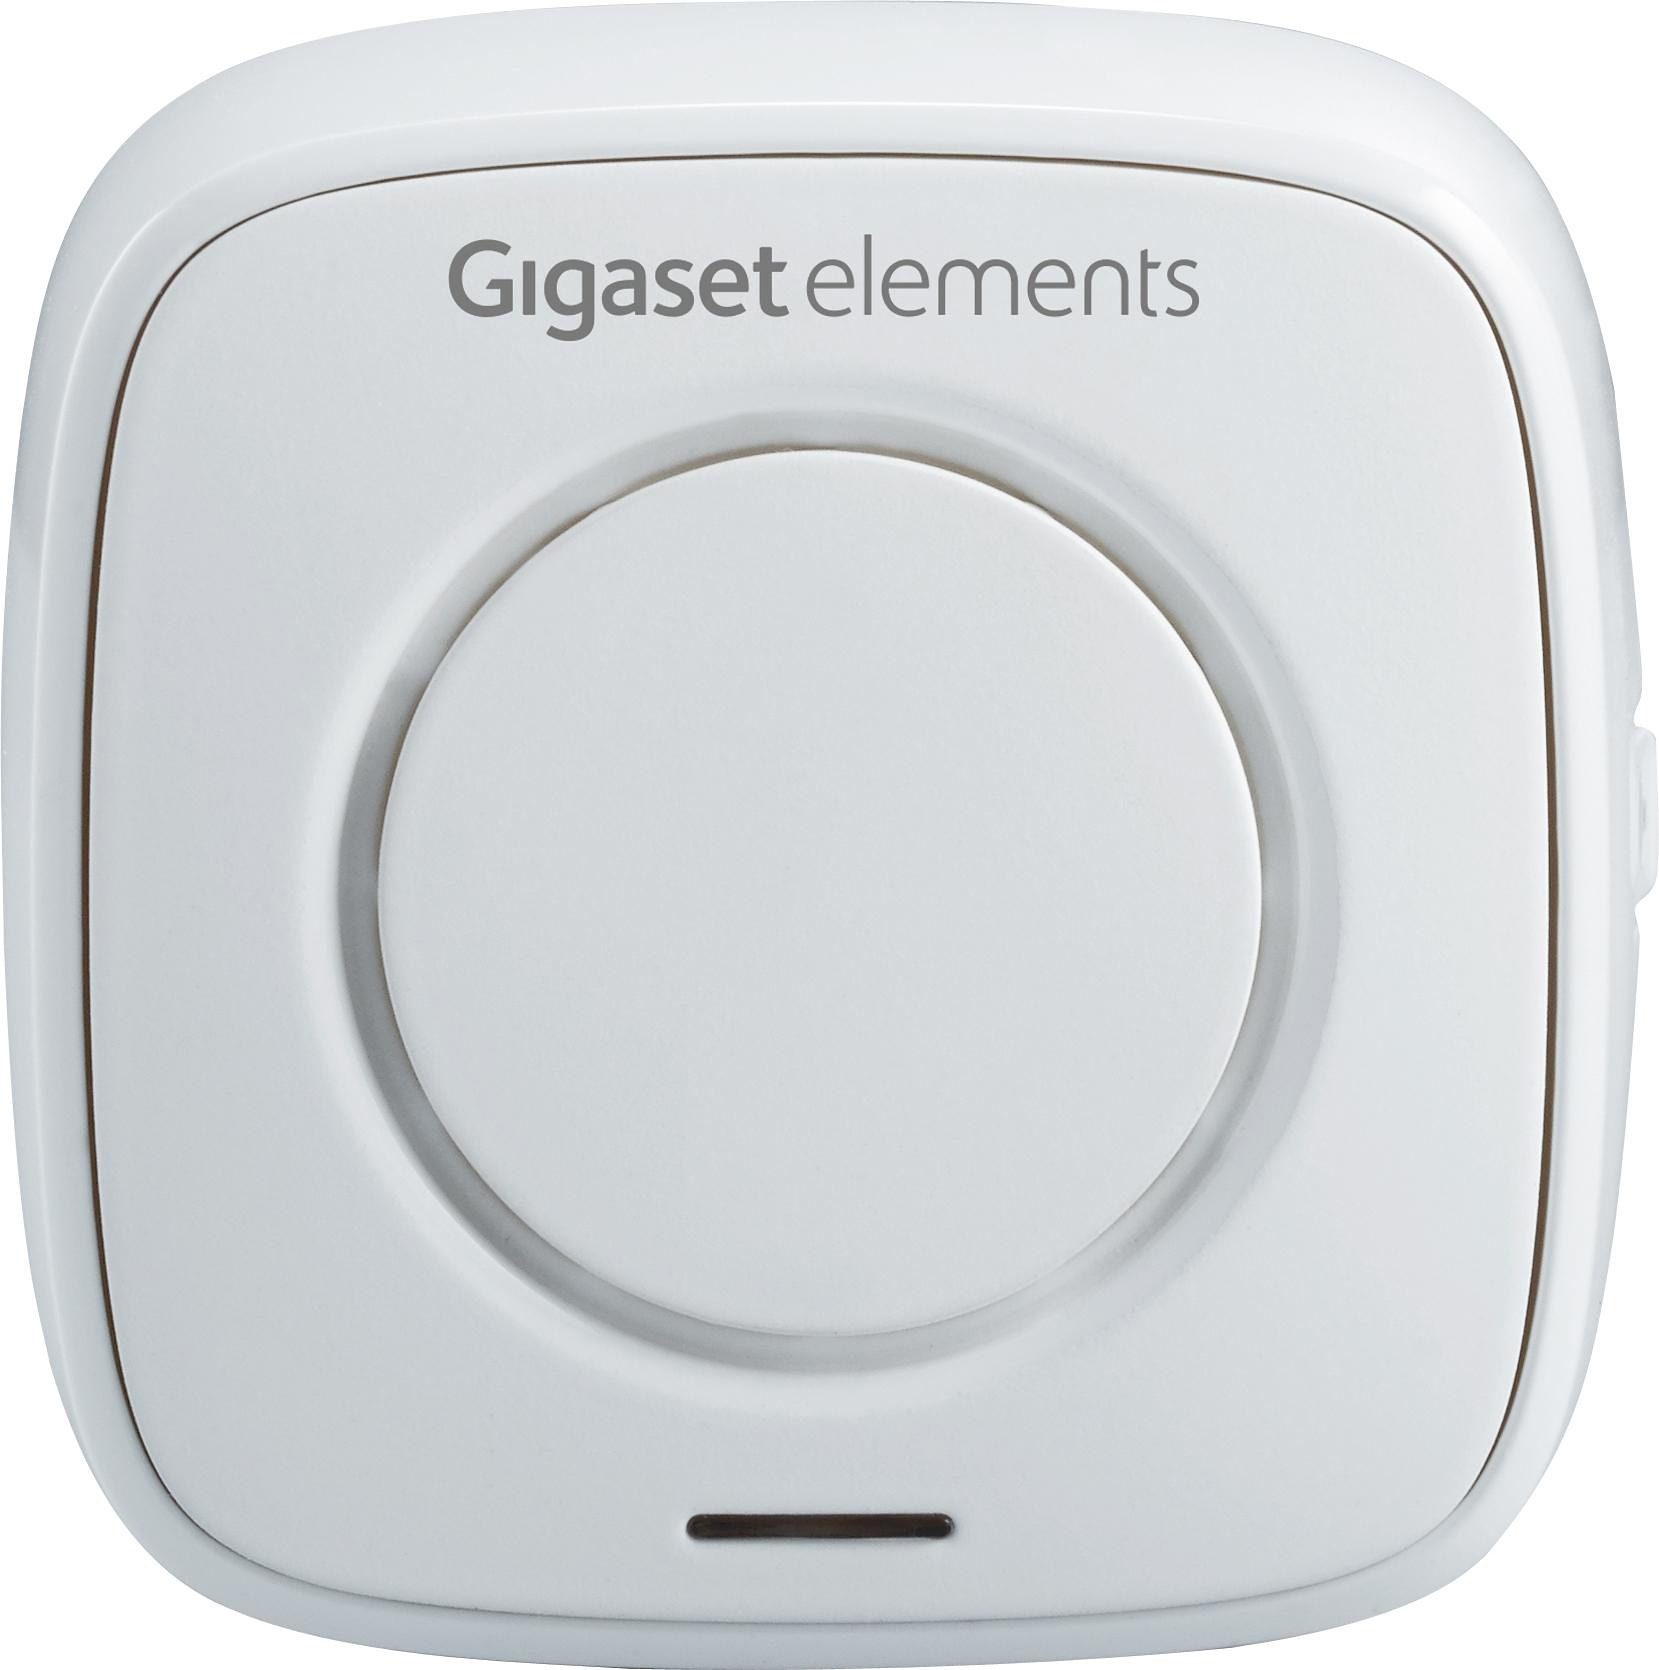 Gigaset Elements siren – Alarmsirene